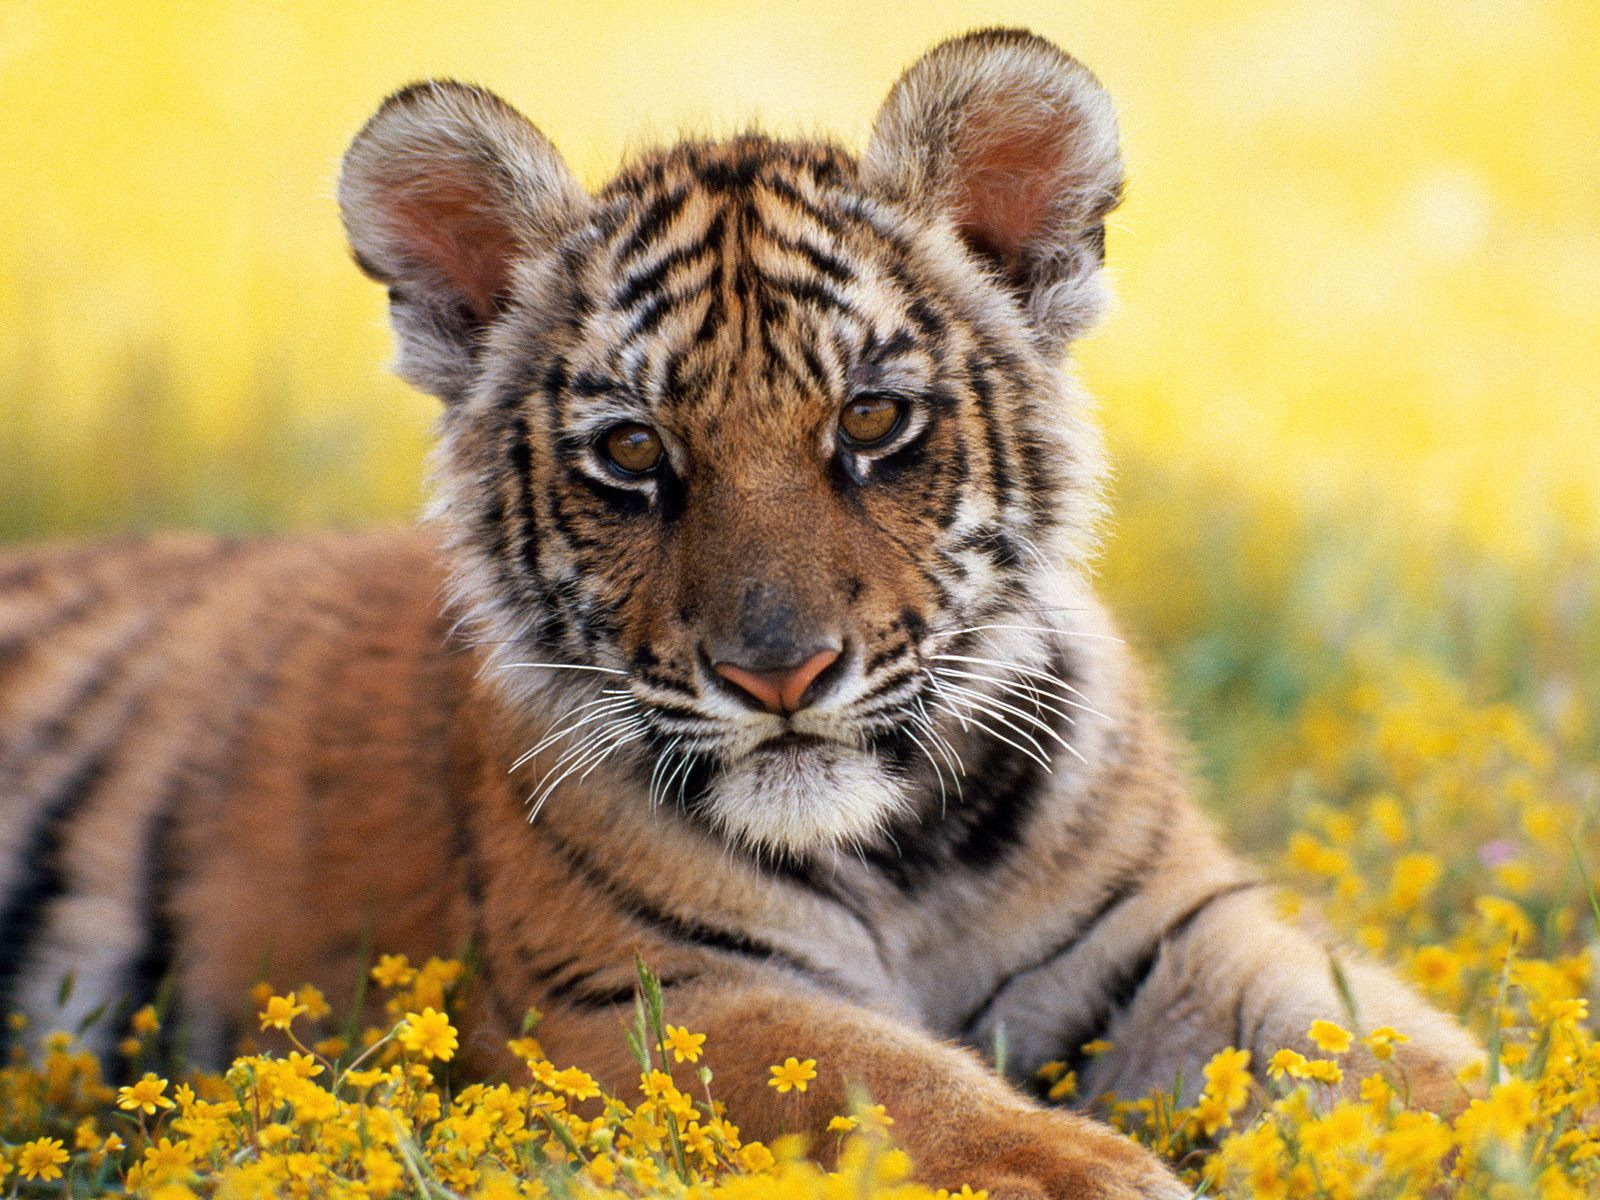 Cute Animal Wallpapers Free: Best Animals